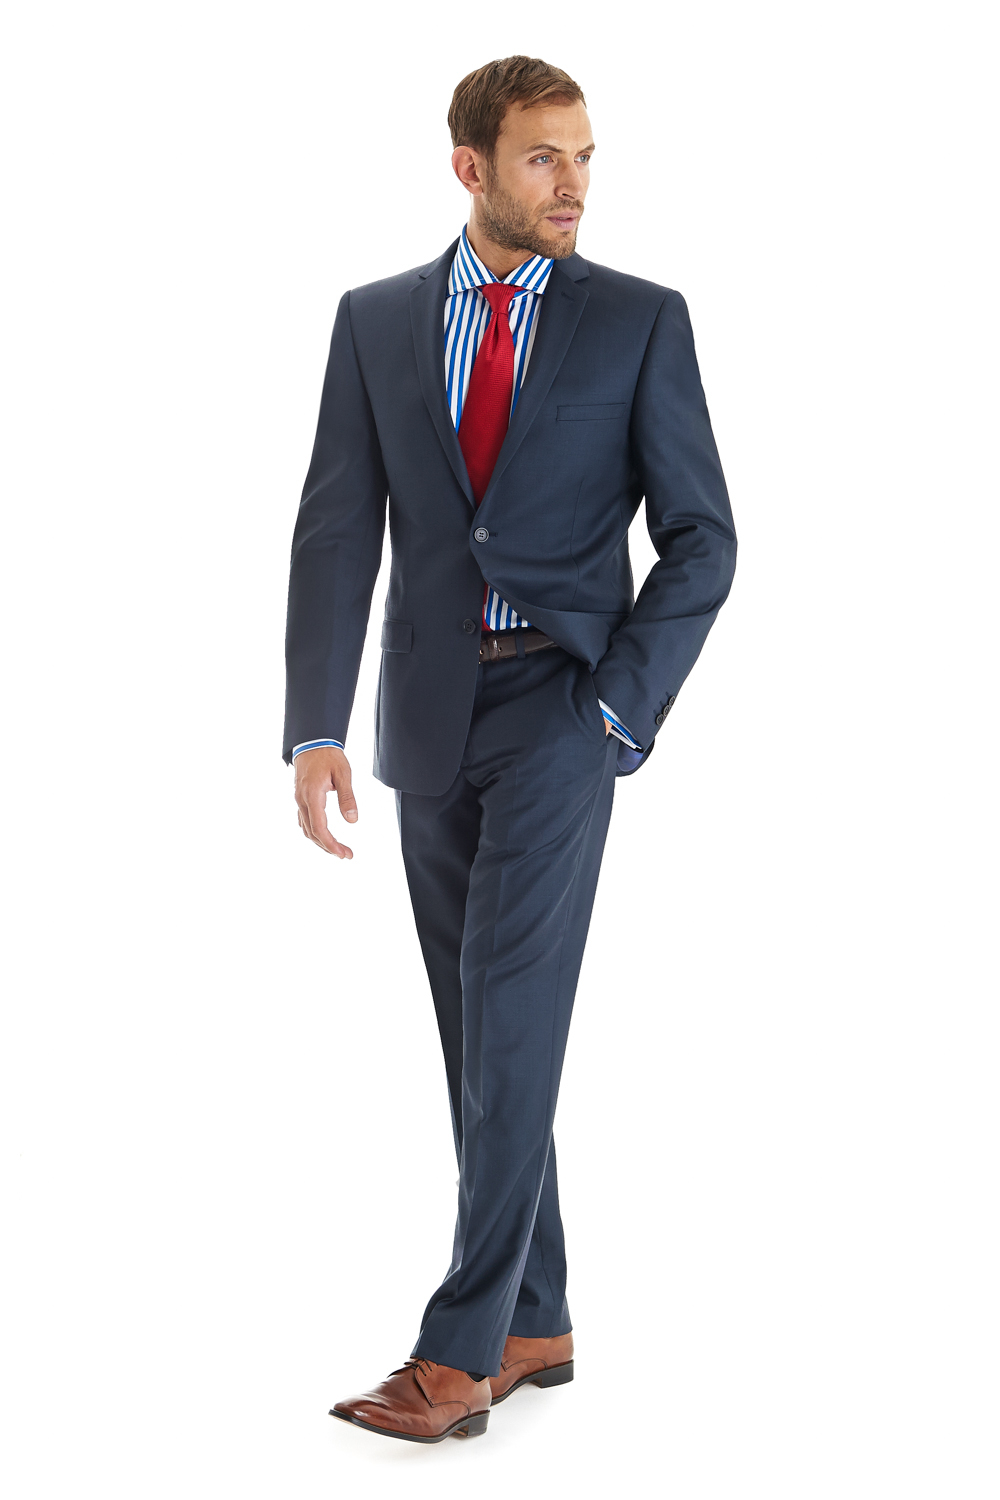 Calvin Klein Navy Pindot Slim Fit Suit – $ ($) That price reflects a half off cut, which is a bare minimum for Macy's (which was where it was found). Doesn't look like it's available online right now, but check in store if you're really wanting it.